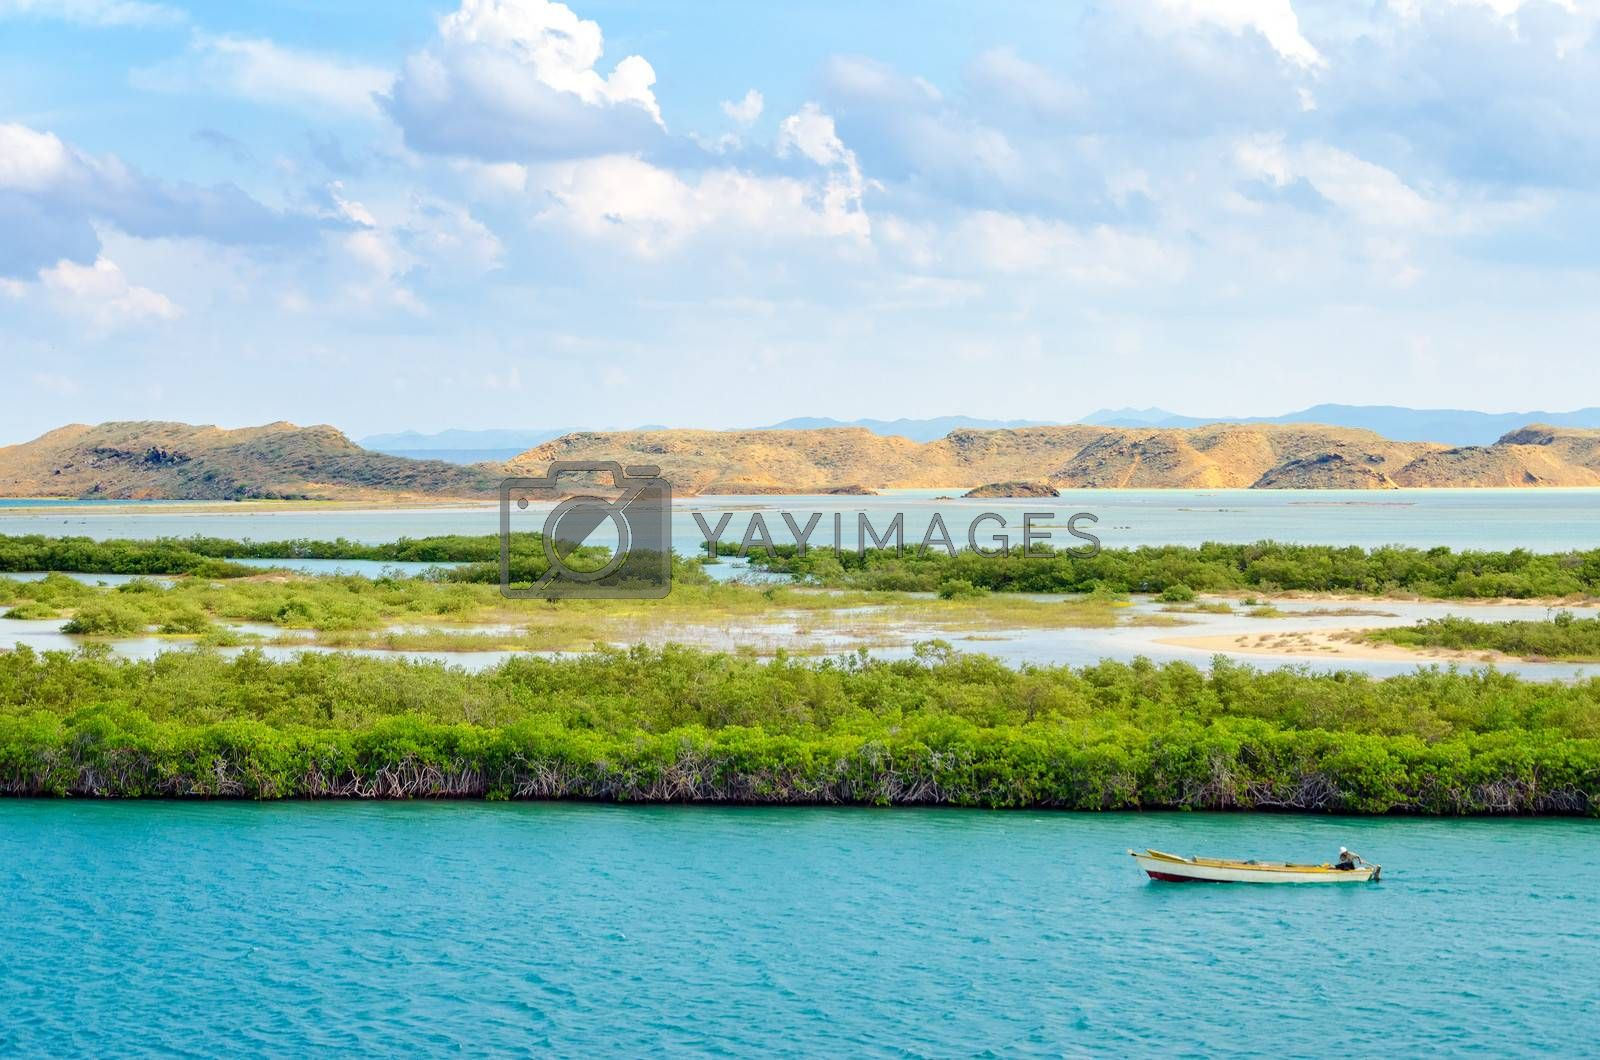 Boat passing by mangrove trees in the Caribbean Sea